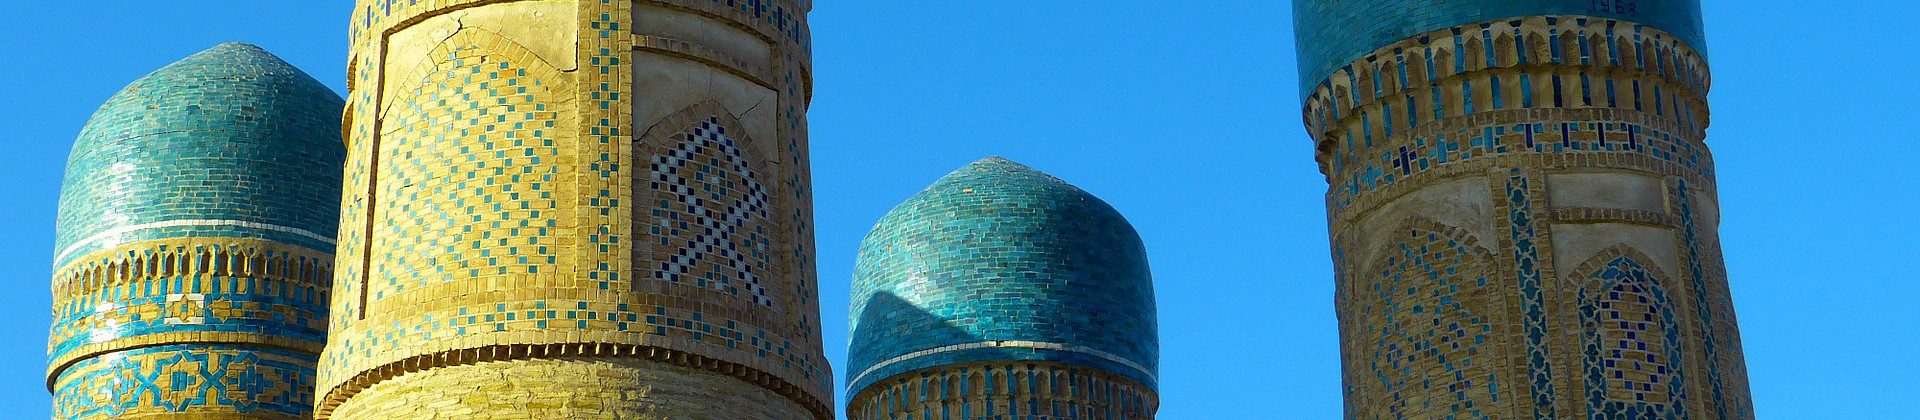 The Great Silk Road Tour to Uzbekistan from Moscow (Lux) - 1